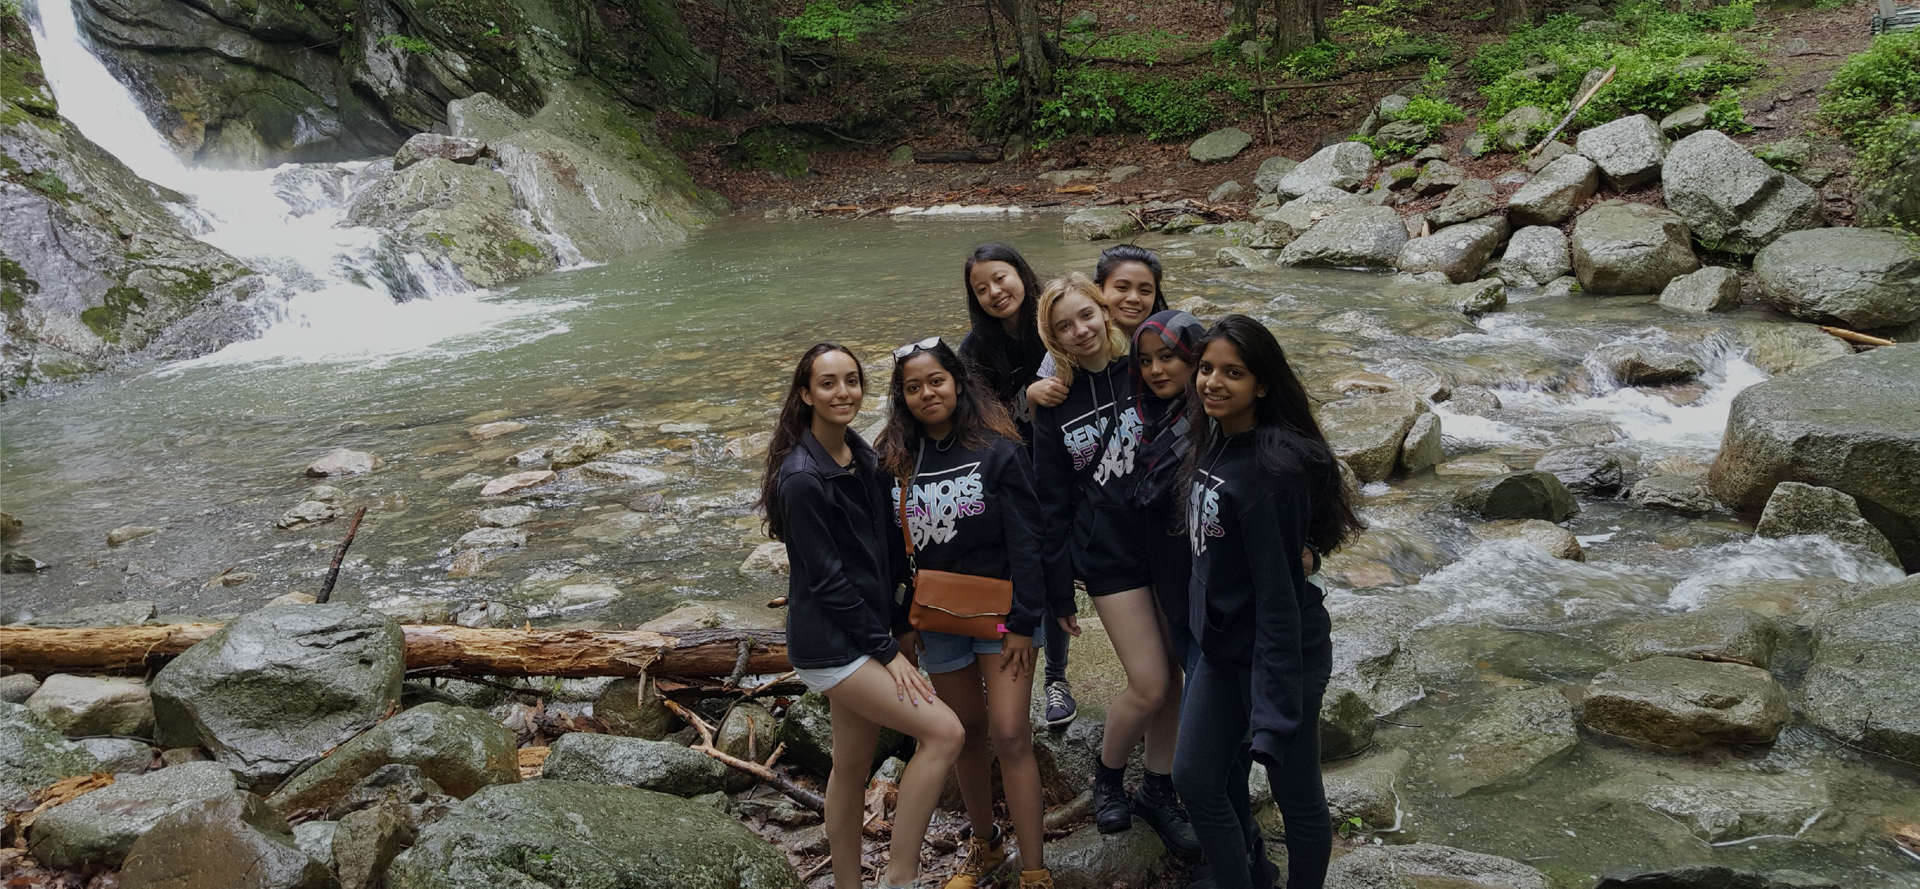 A group of students standing on rocks in front of a lake